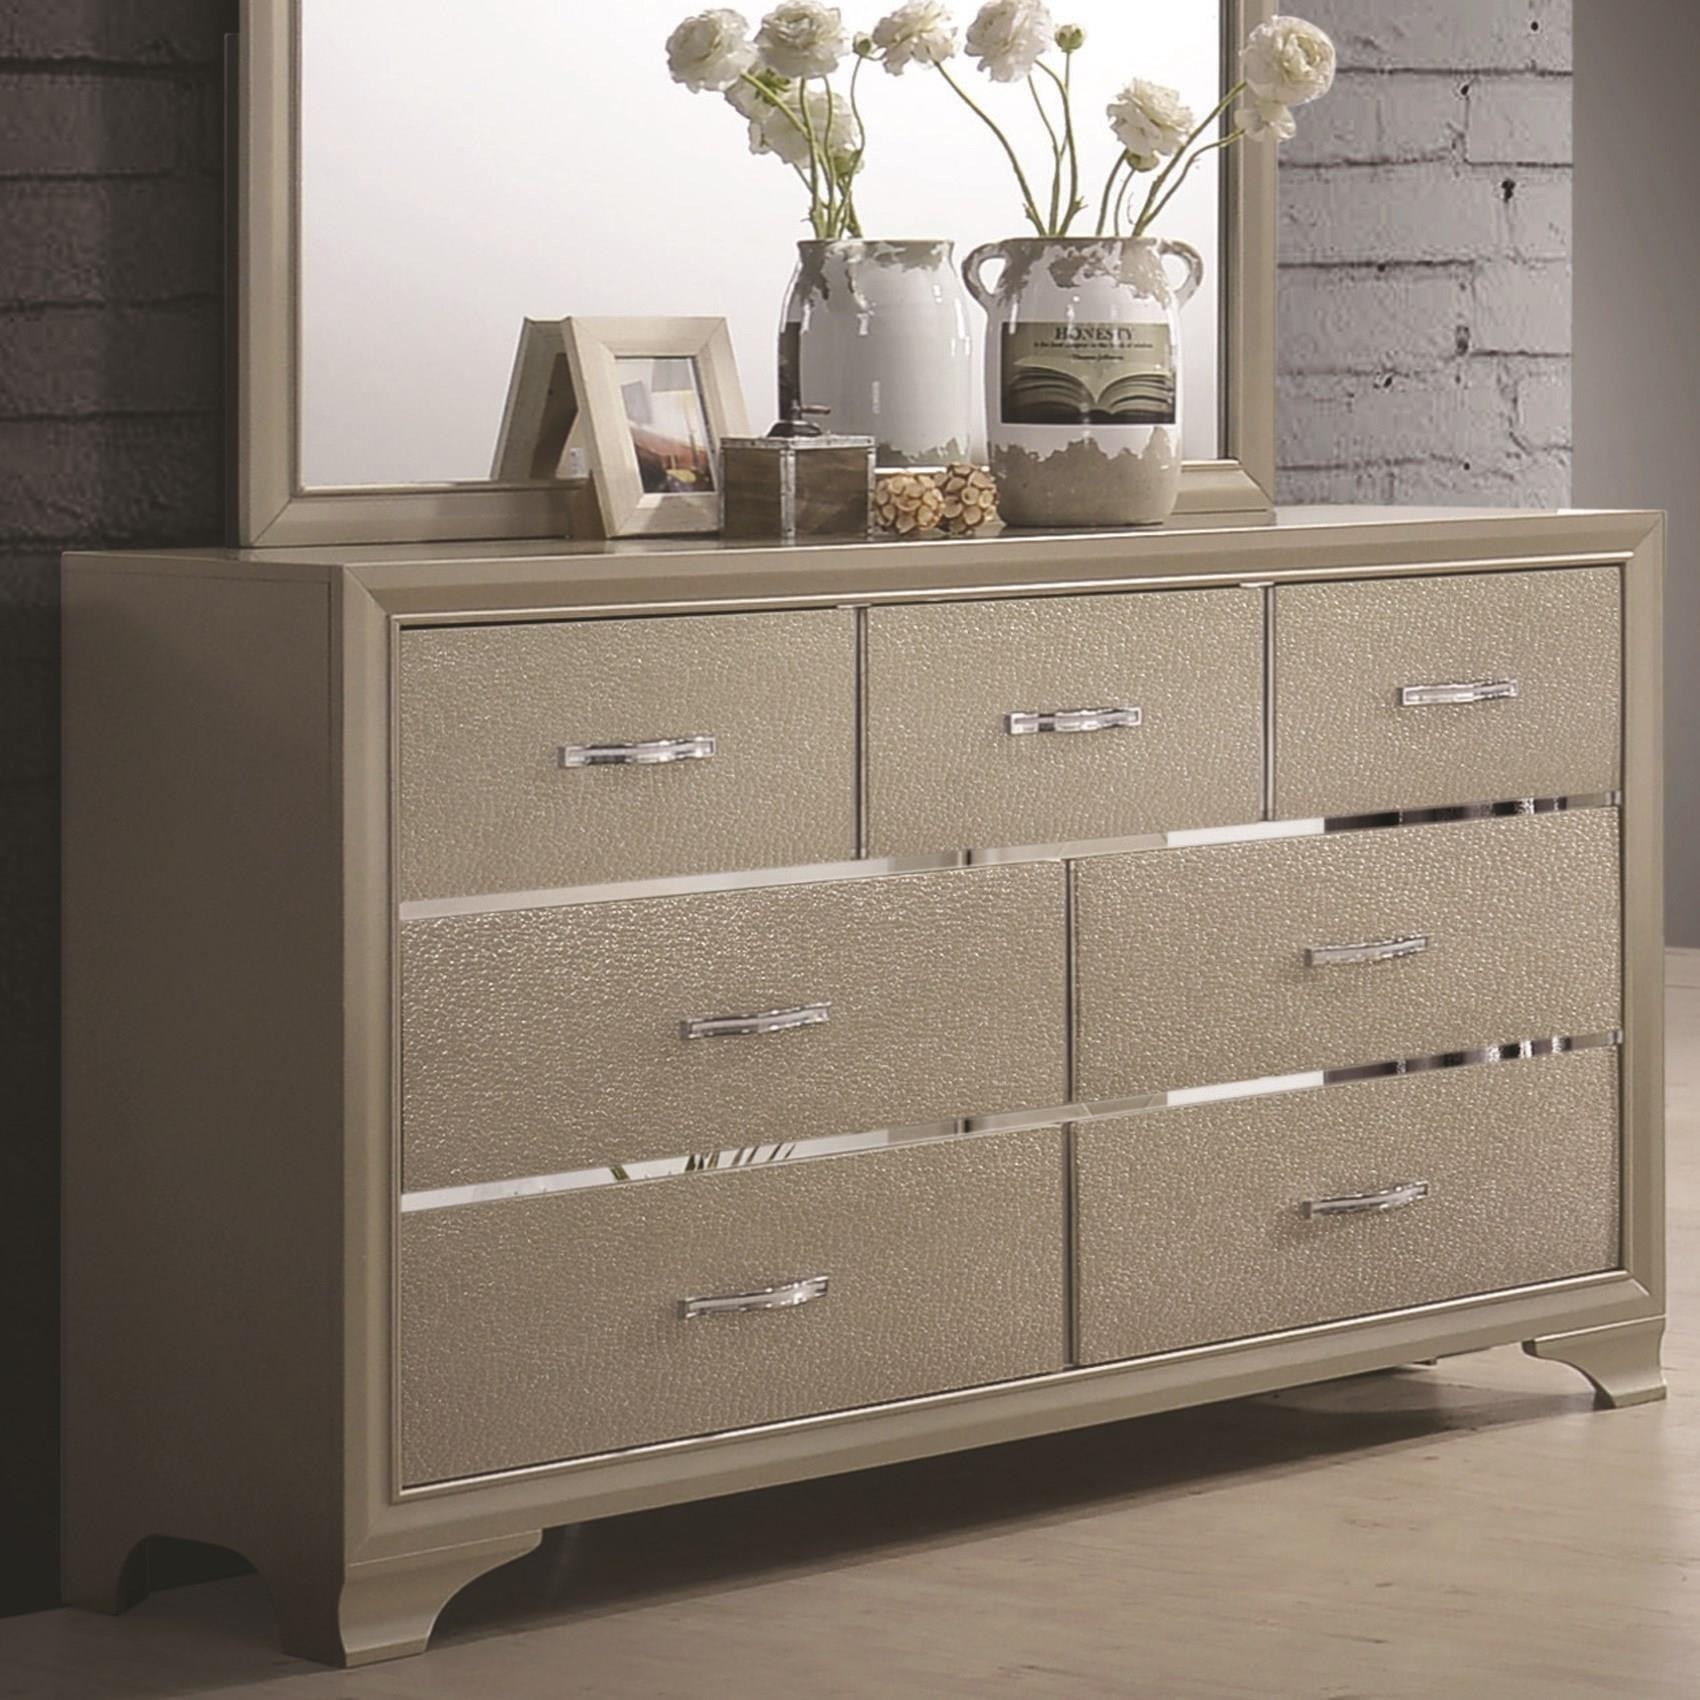 Beaumont Dresser by Coaster at Standard Furniture